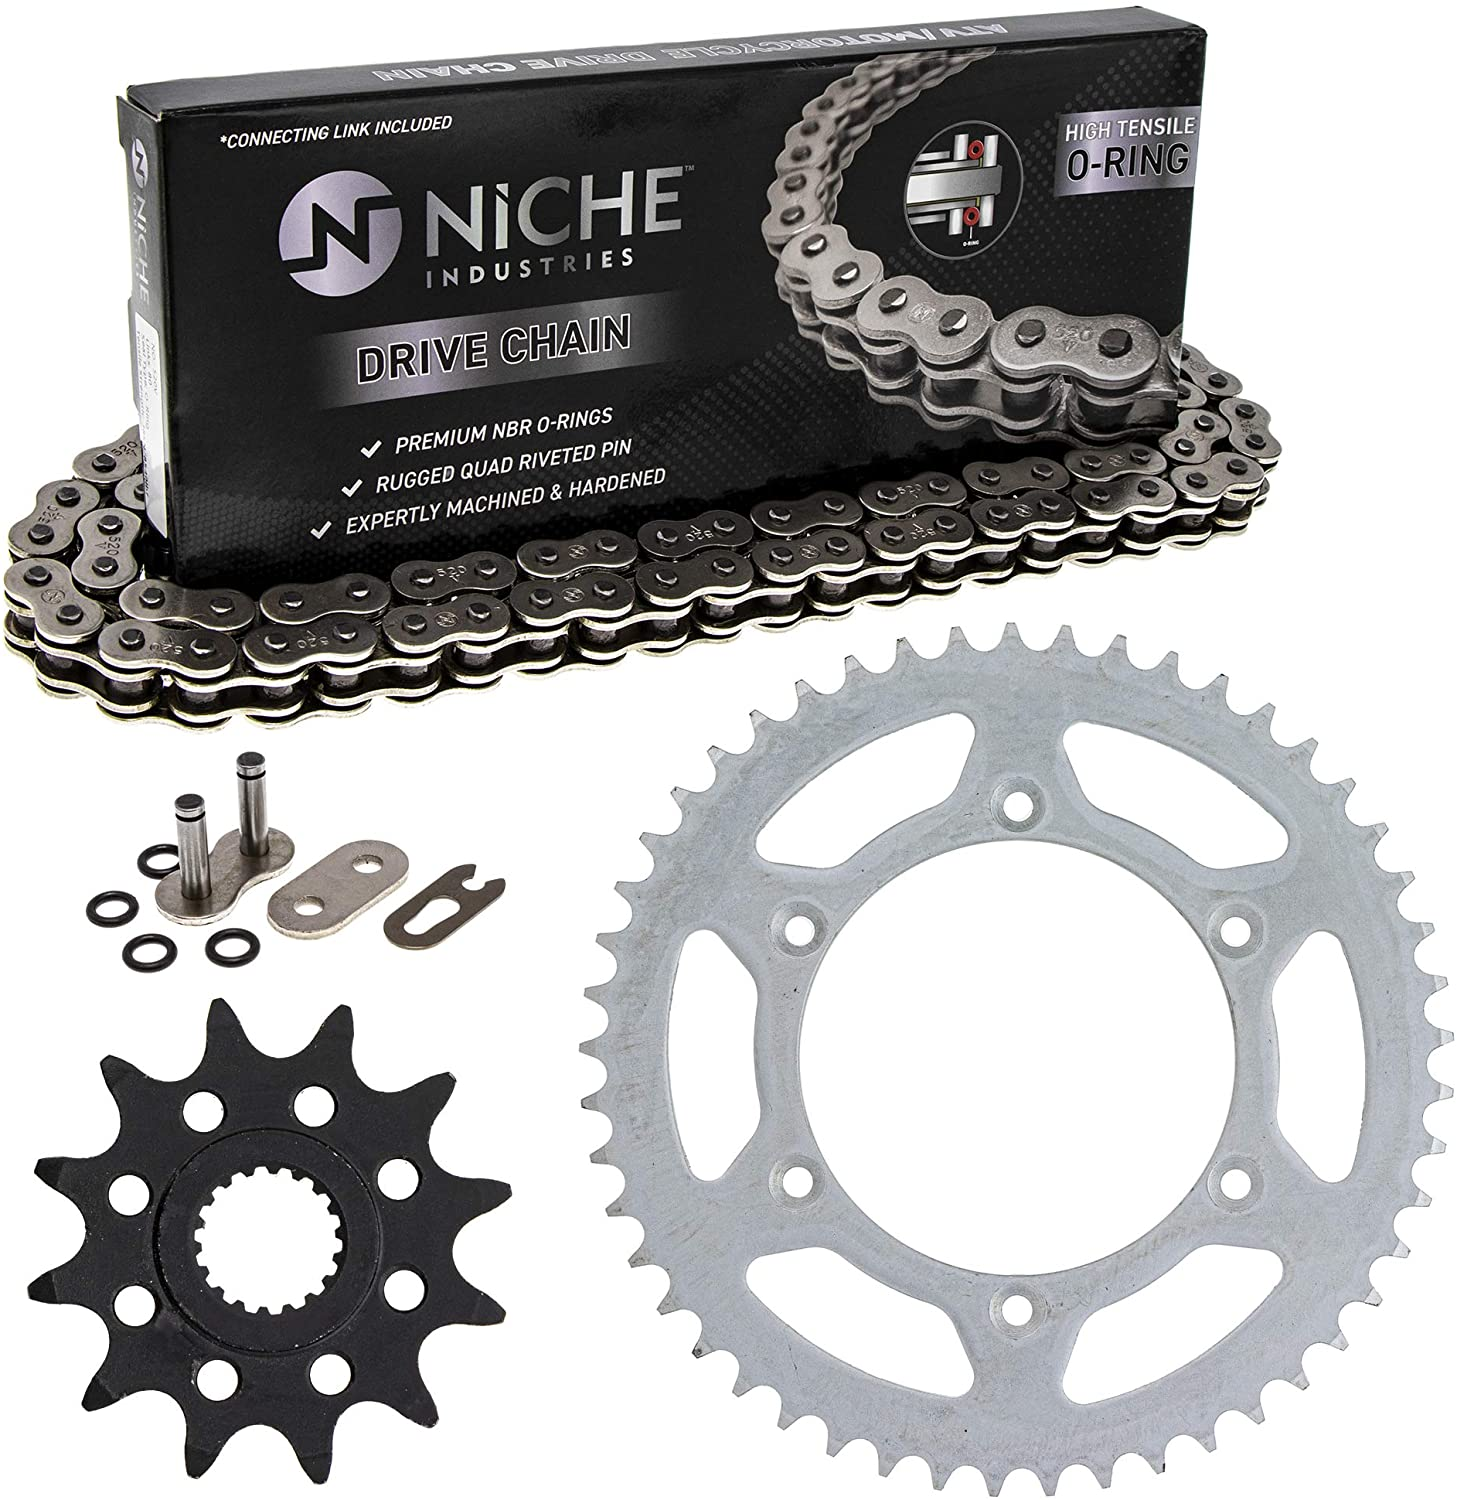 NICHE Drive Sprocket Chain Combo for Suzuki RM125 Front 12 Rear 49 Tooth 520V O-Ring 114 Links